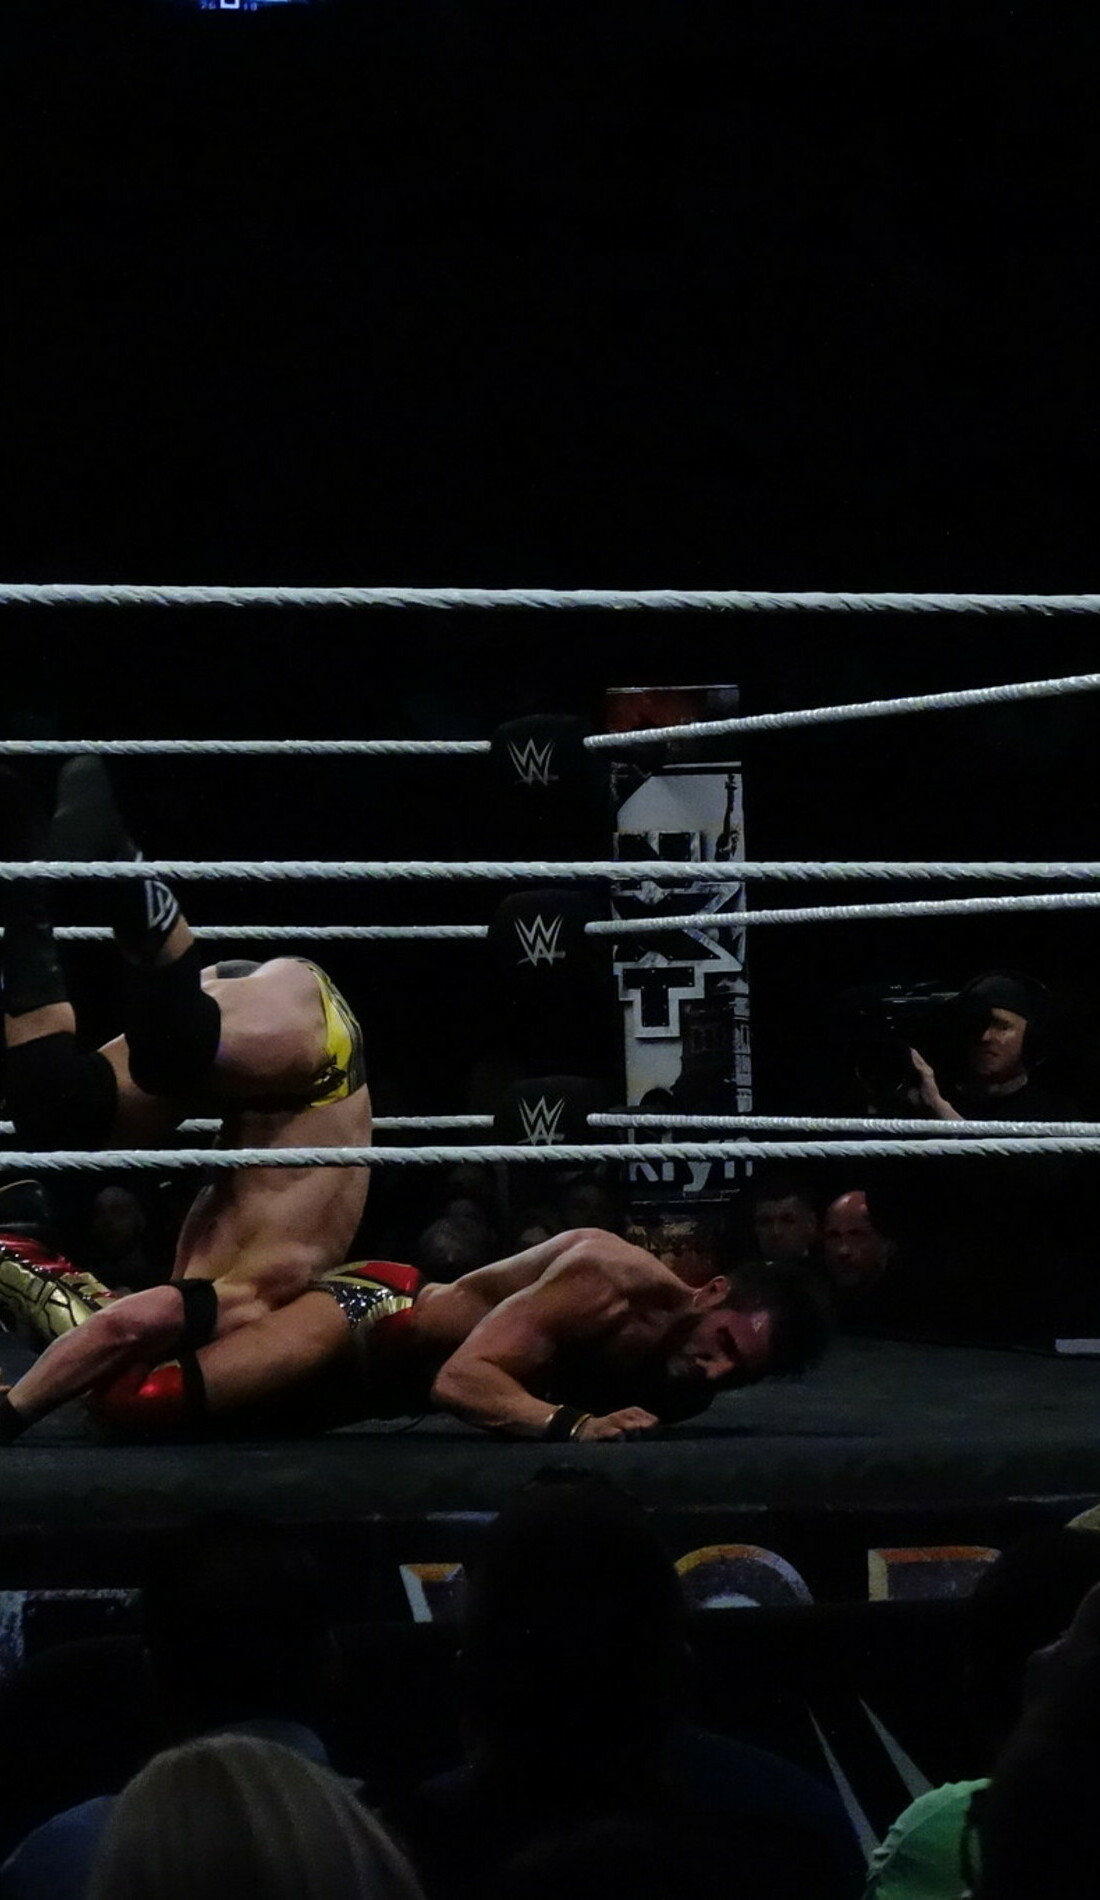 A Micro Wrestling Federation live event